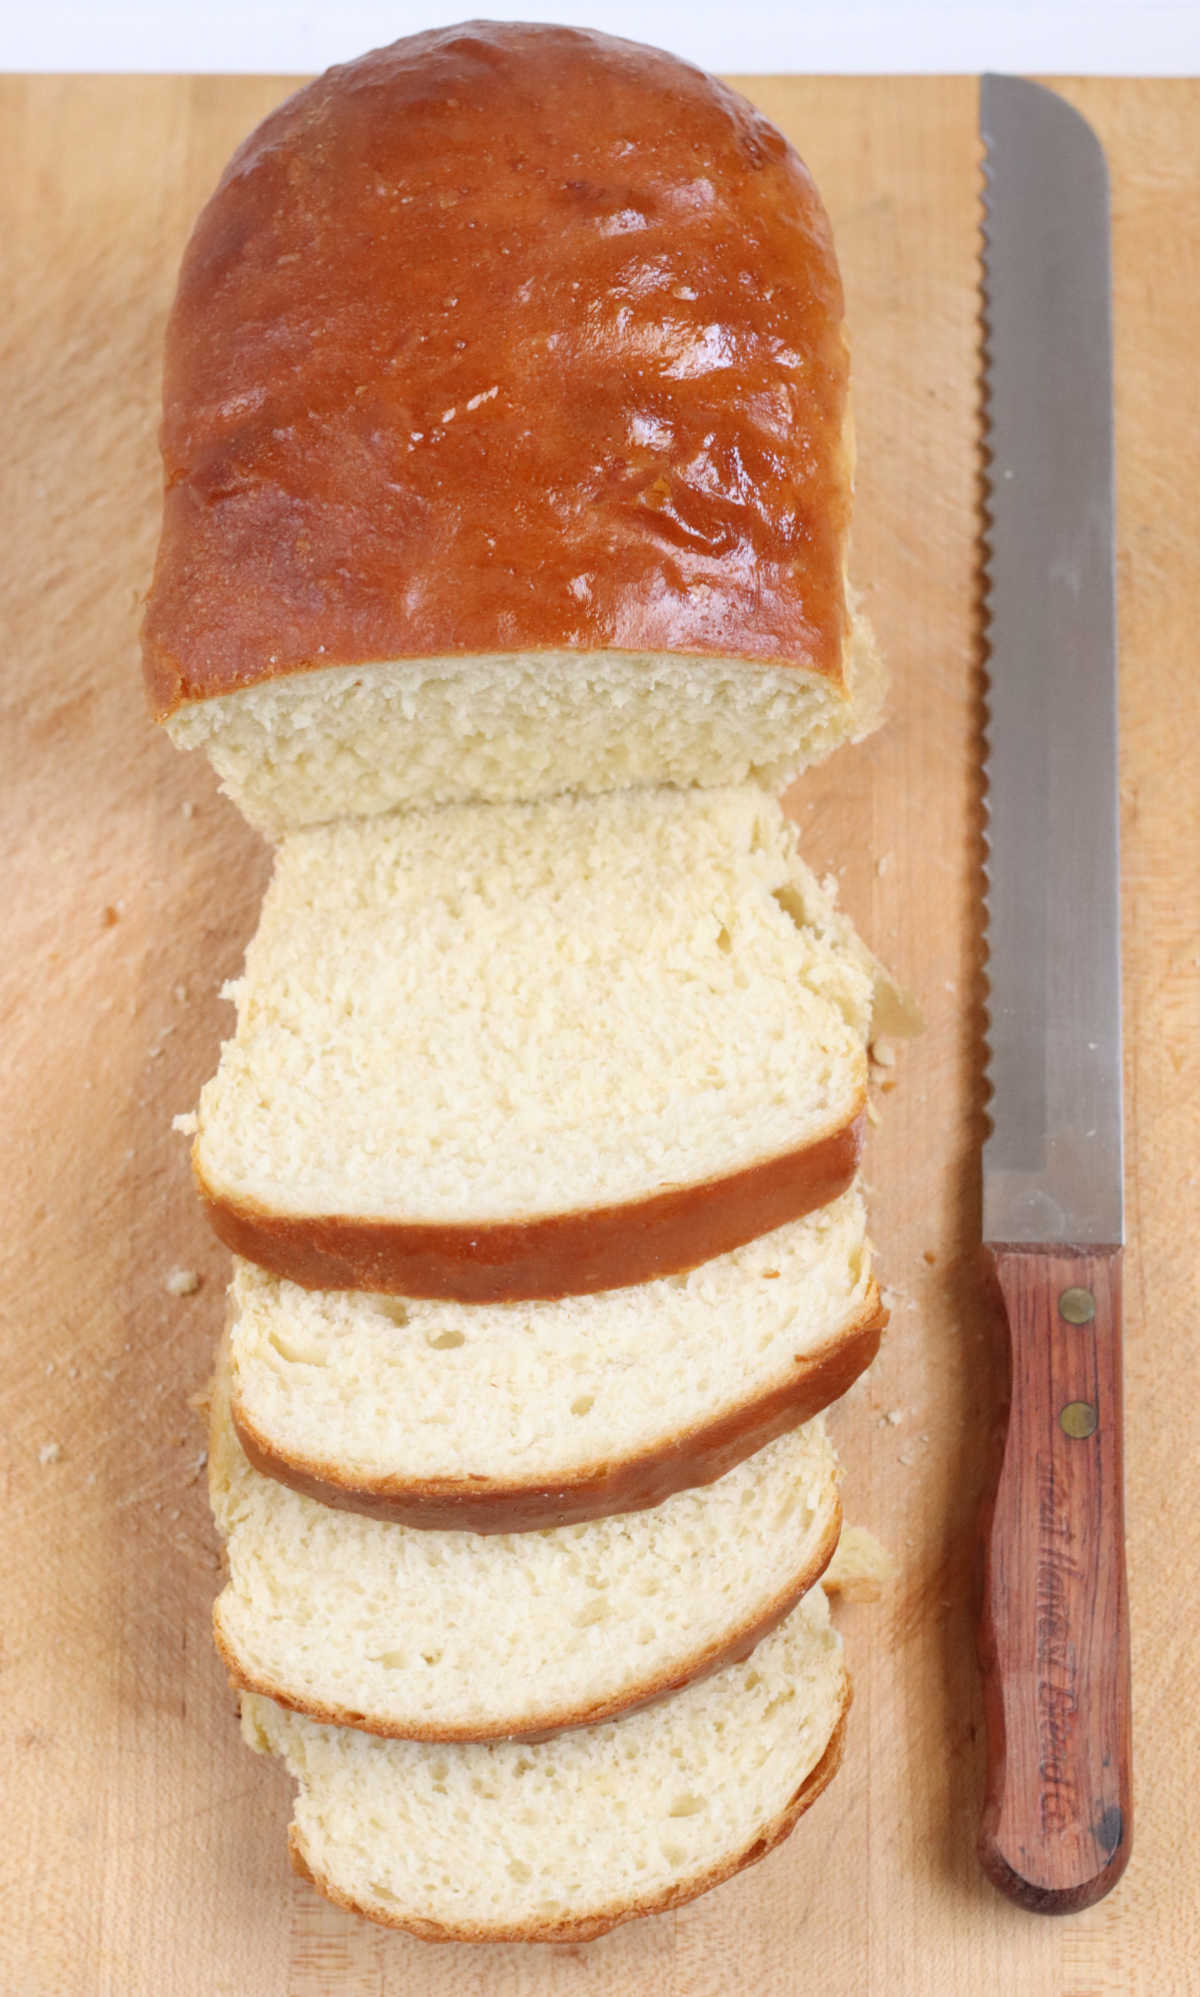 Loaf of white bread on wooden cutting board partially sliced, bread knife to right.